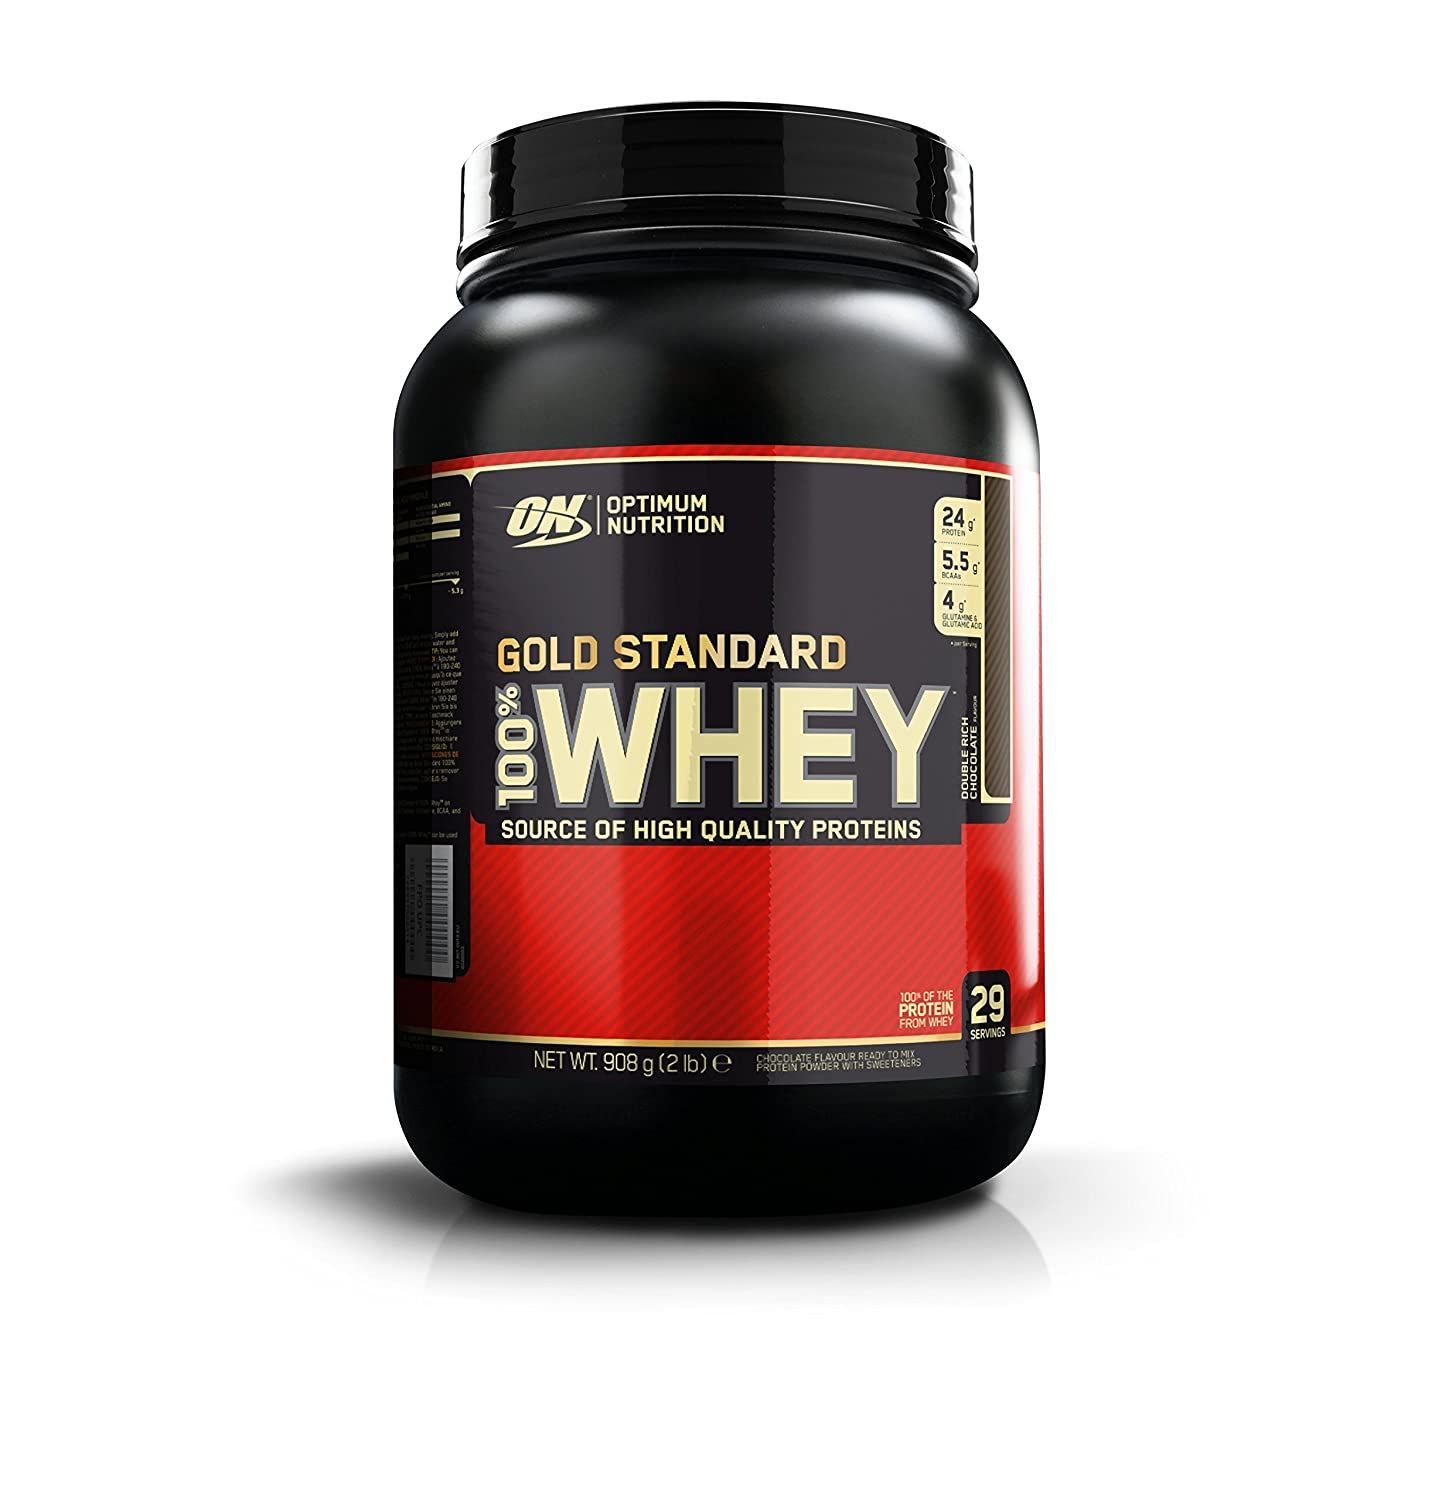 b2e0e8257 Optimum Nutrition Gold Standard Whey Protein Powder with Glutamine and  Amino Acids Protein Shake - Double Rich Chocolate